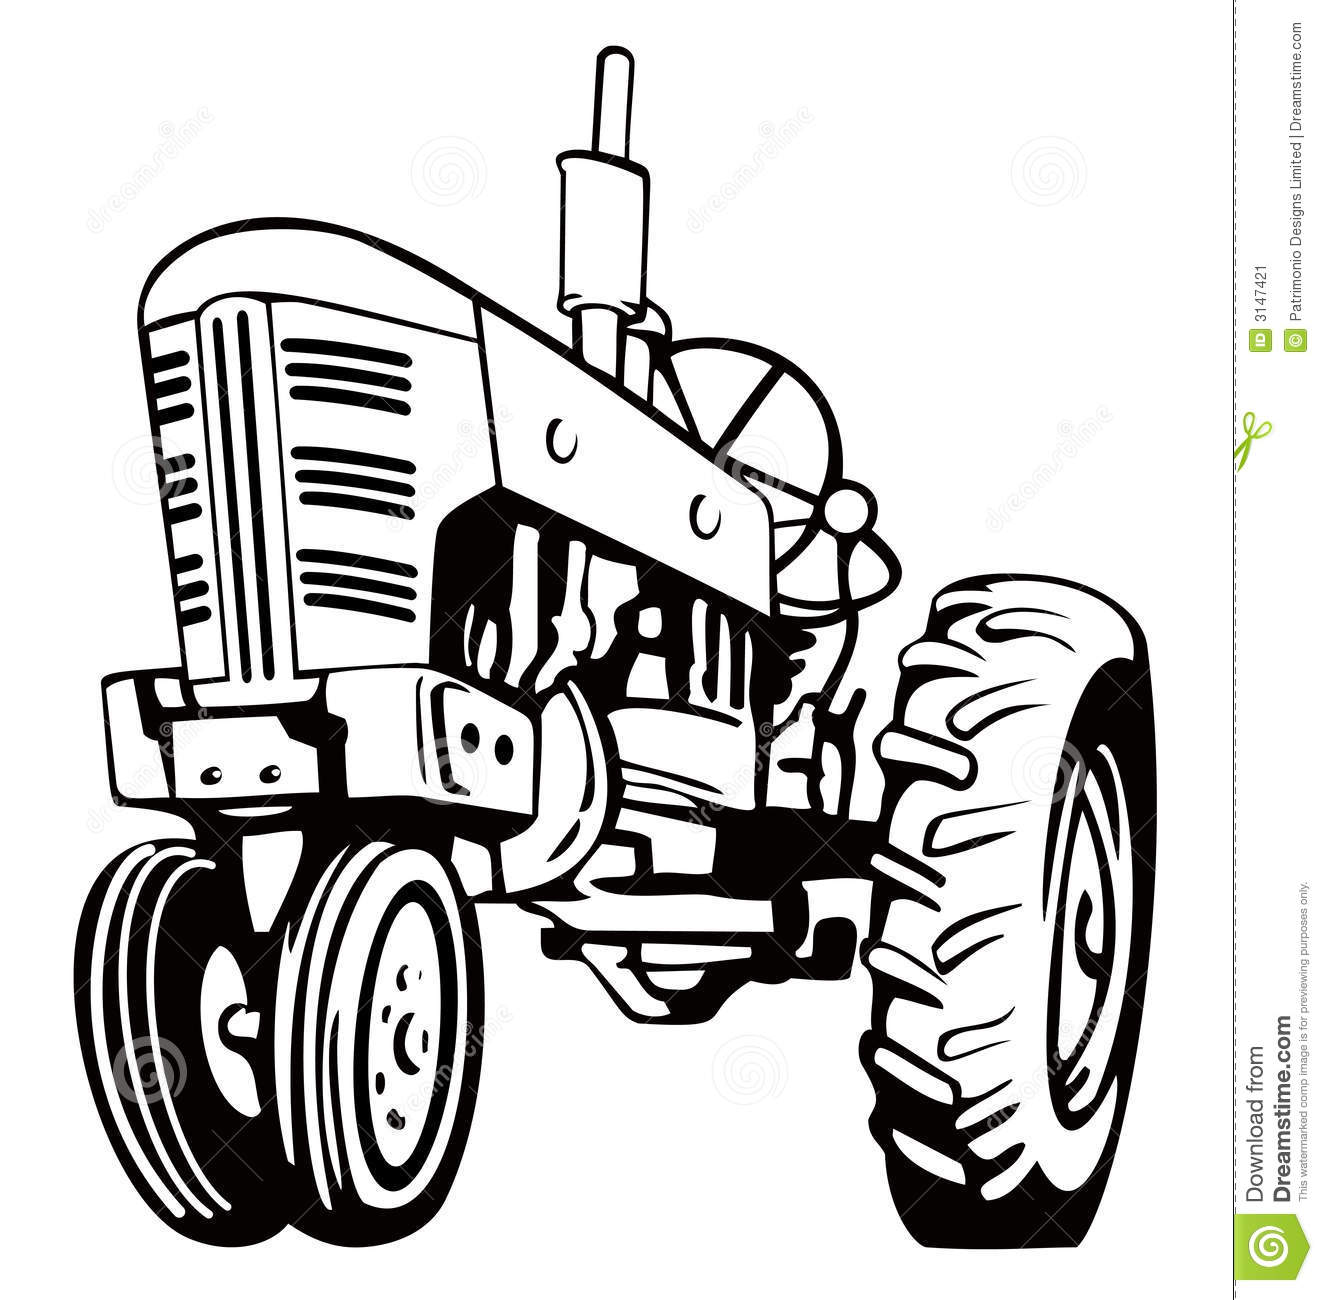 Tractor Black And White.